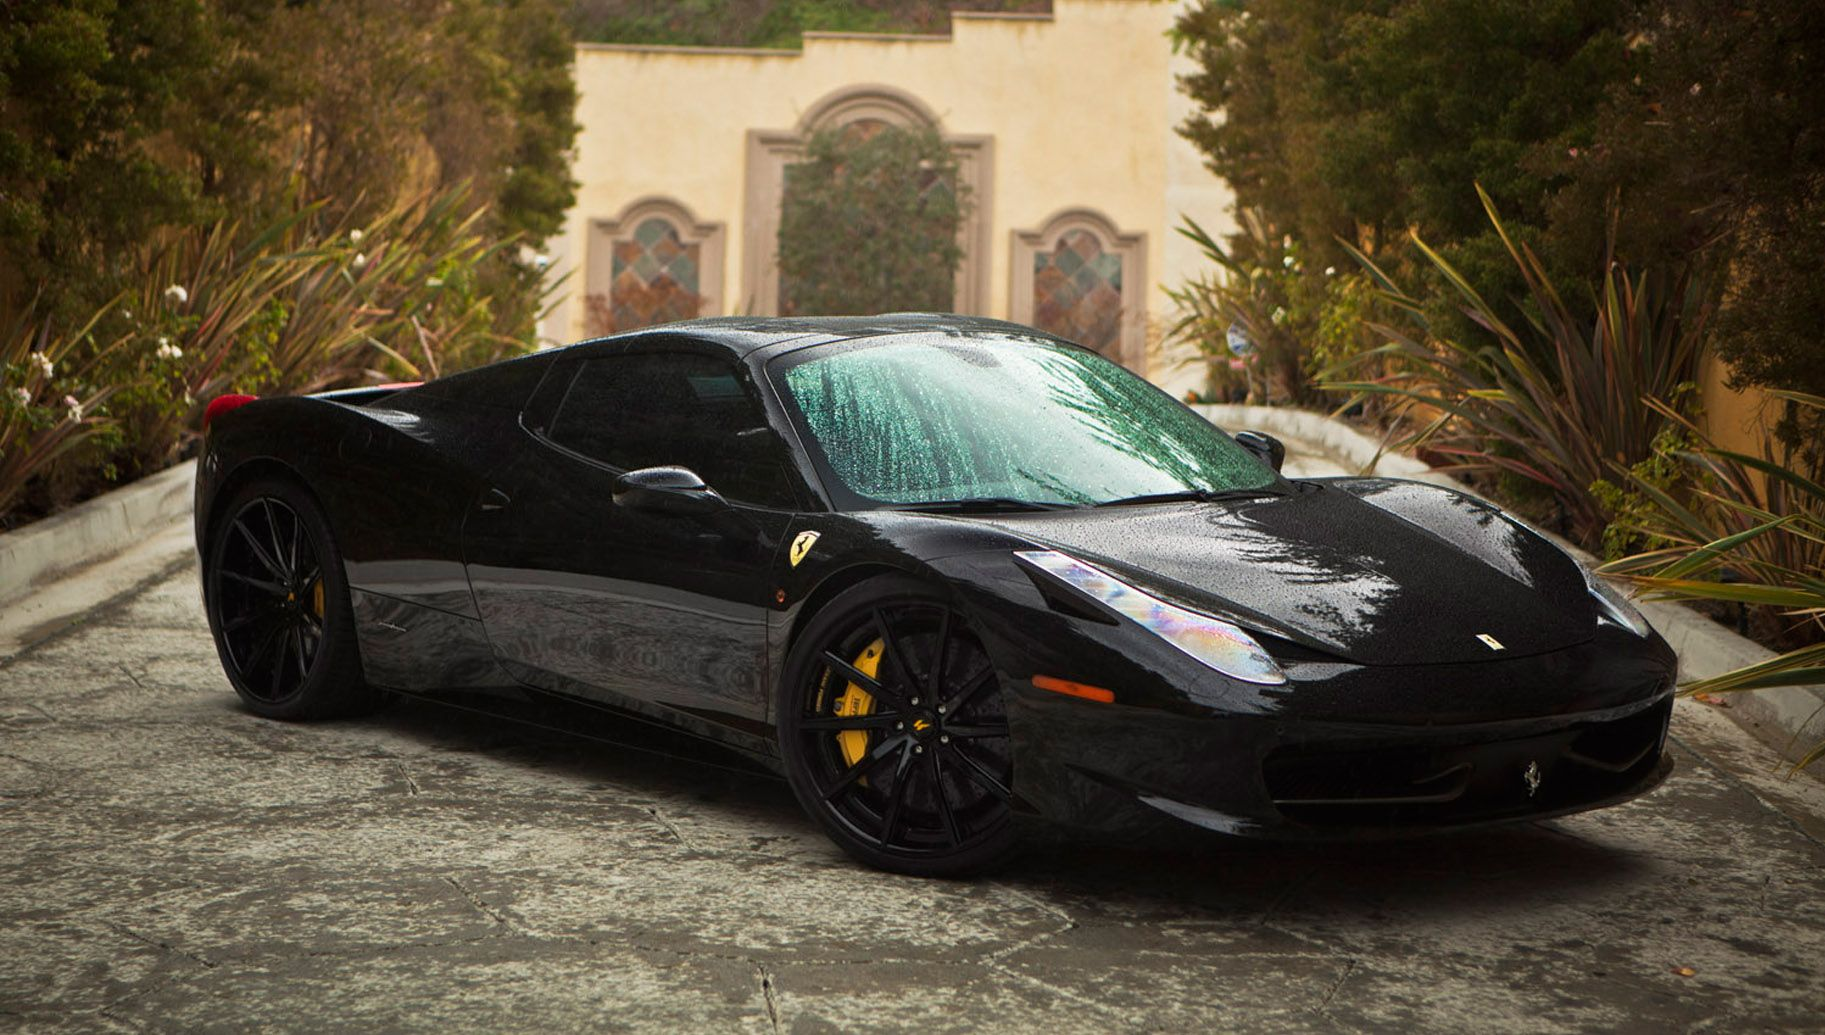 Ferrari 458 Spider On Custom Lexani Forged Wheels With Images